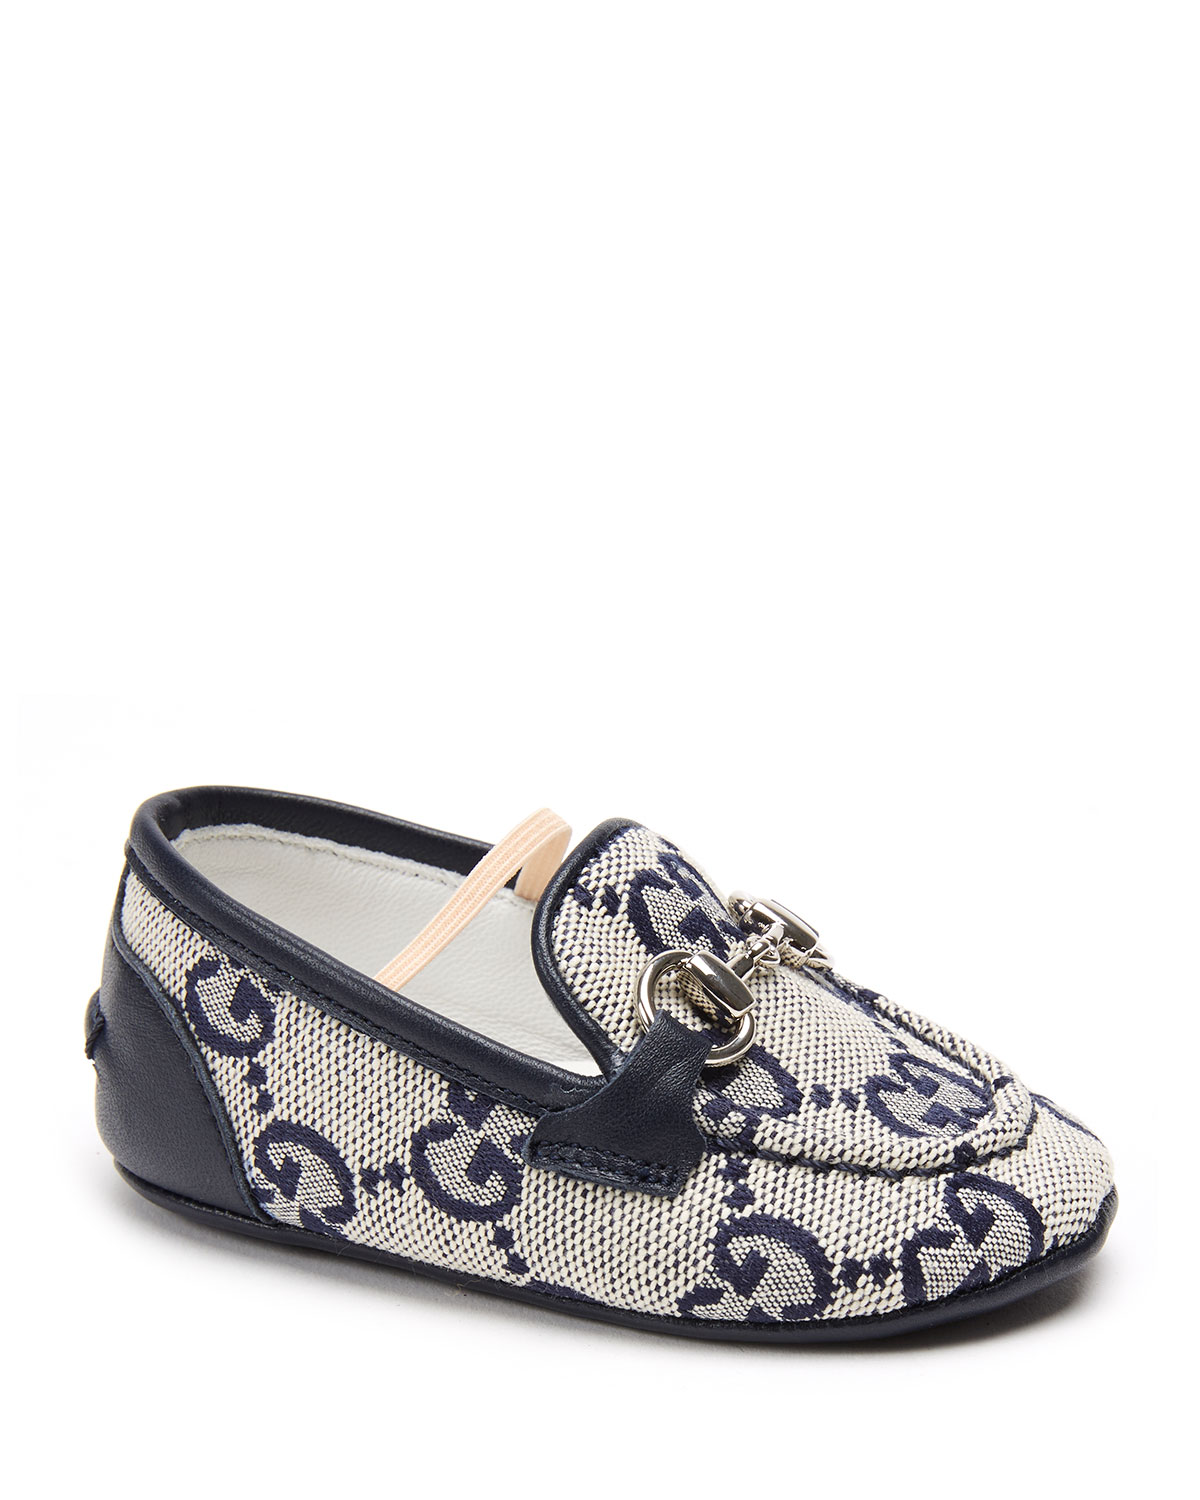 Gucci Jordaan Gg Supreme Canvas Loafers, Baby In Blue